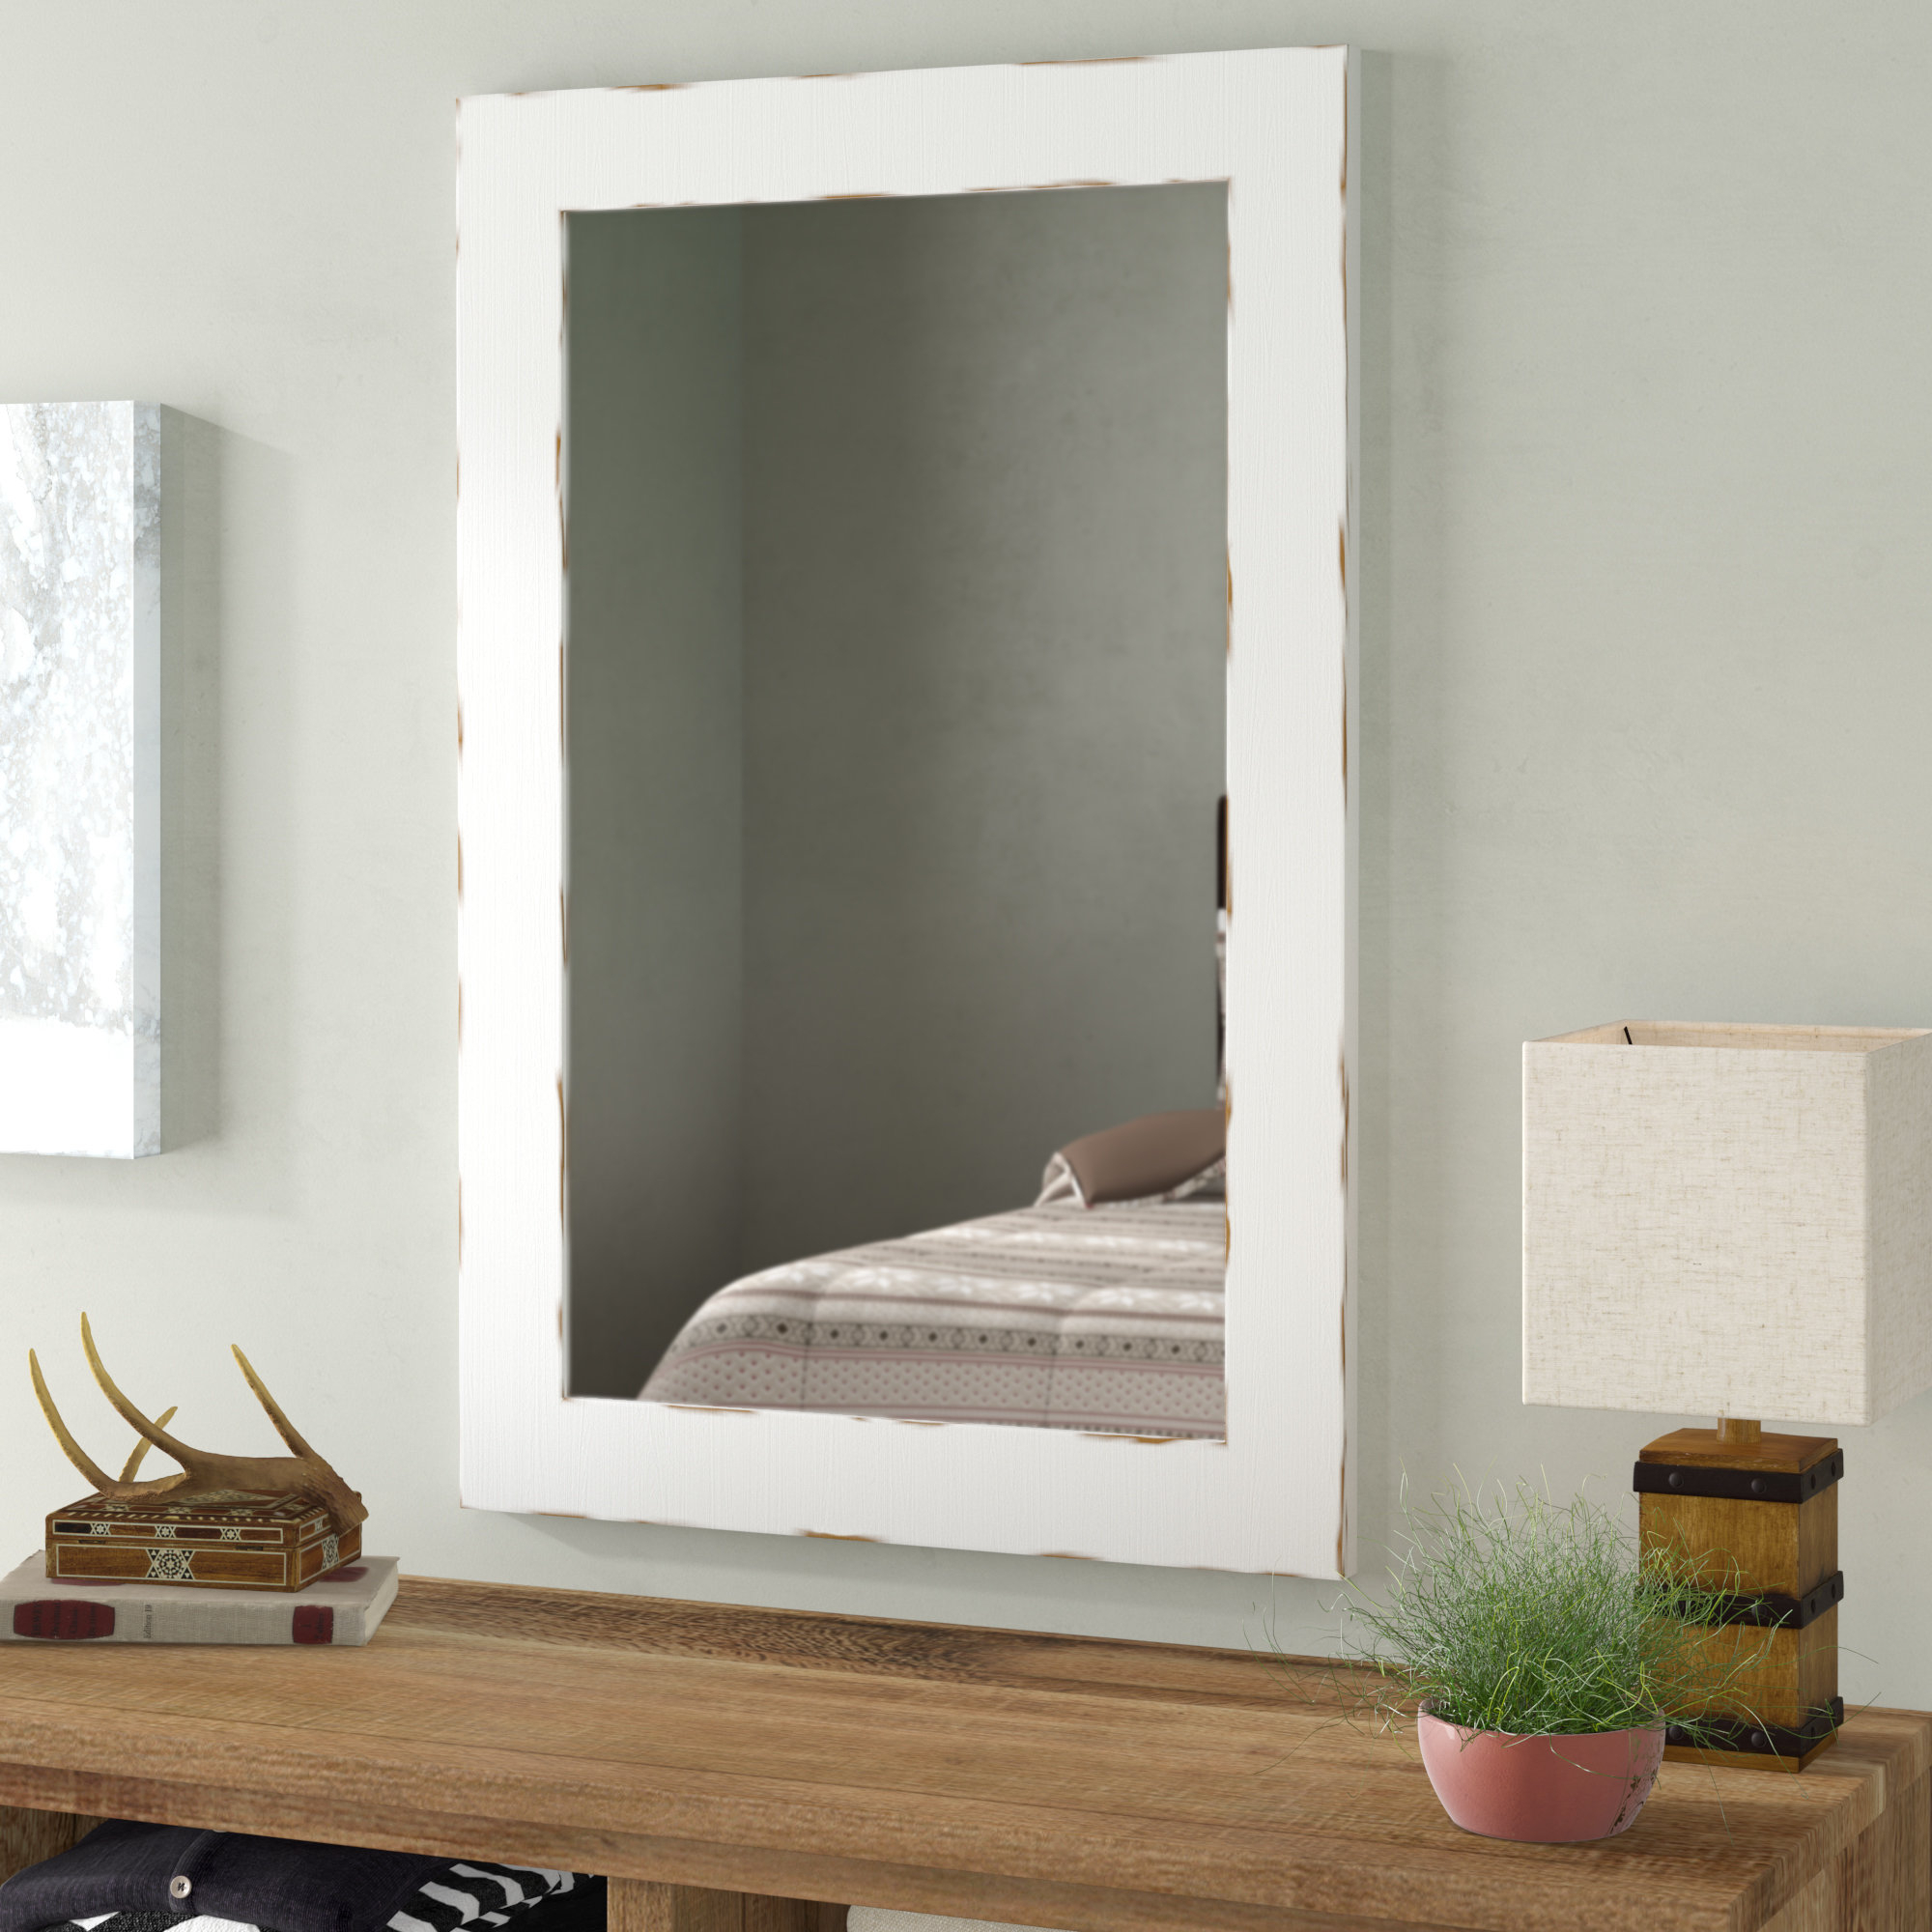 Union Rustic Longwood Rustic Beveled Accent Mirror & Reviews Inside Shildon Beveled Accent Mirrors (View 15 of 20)